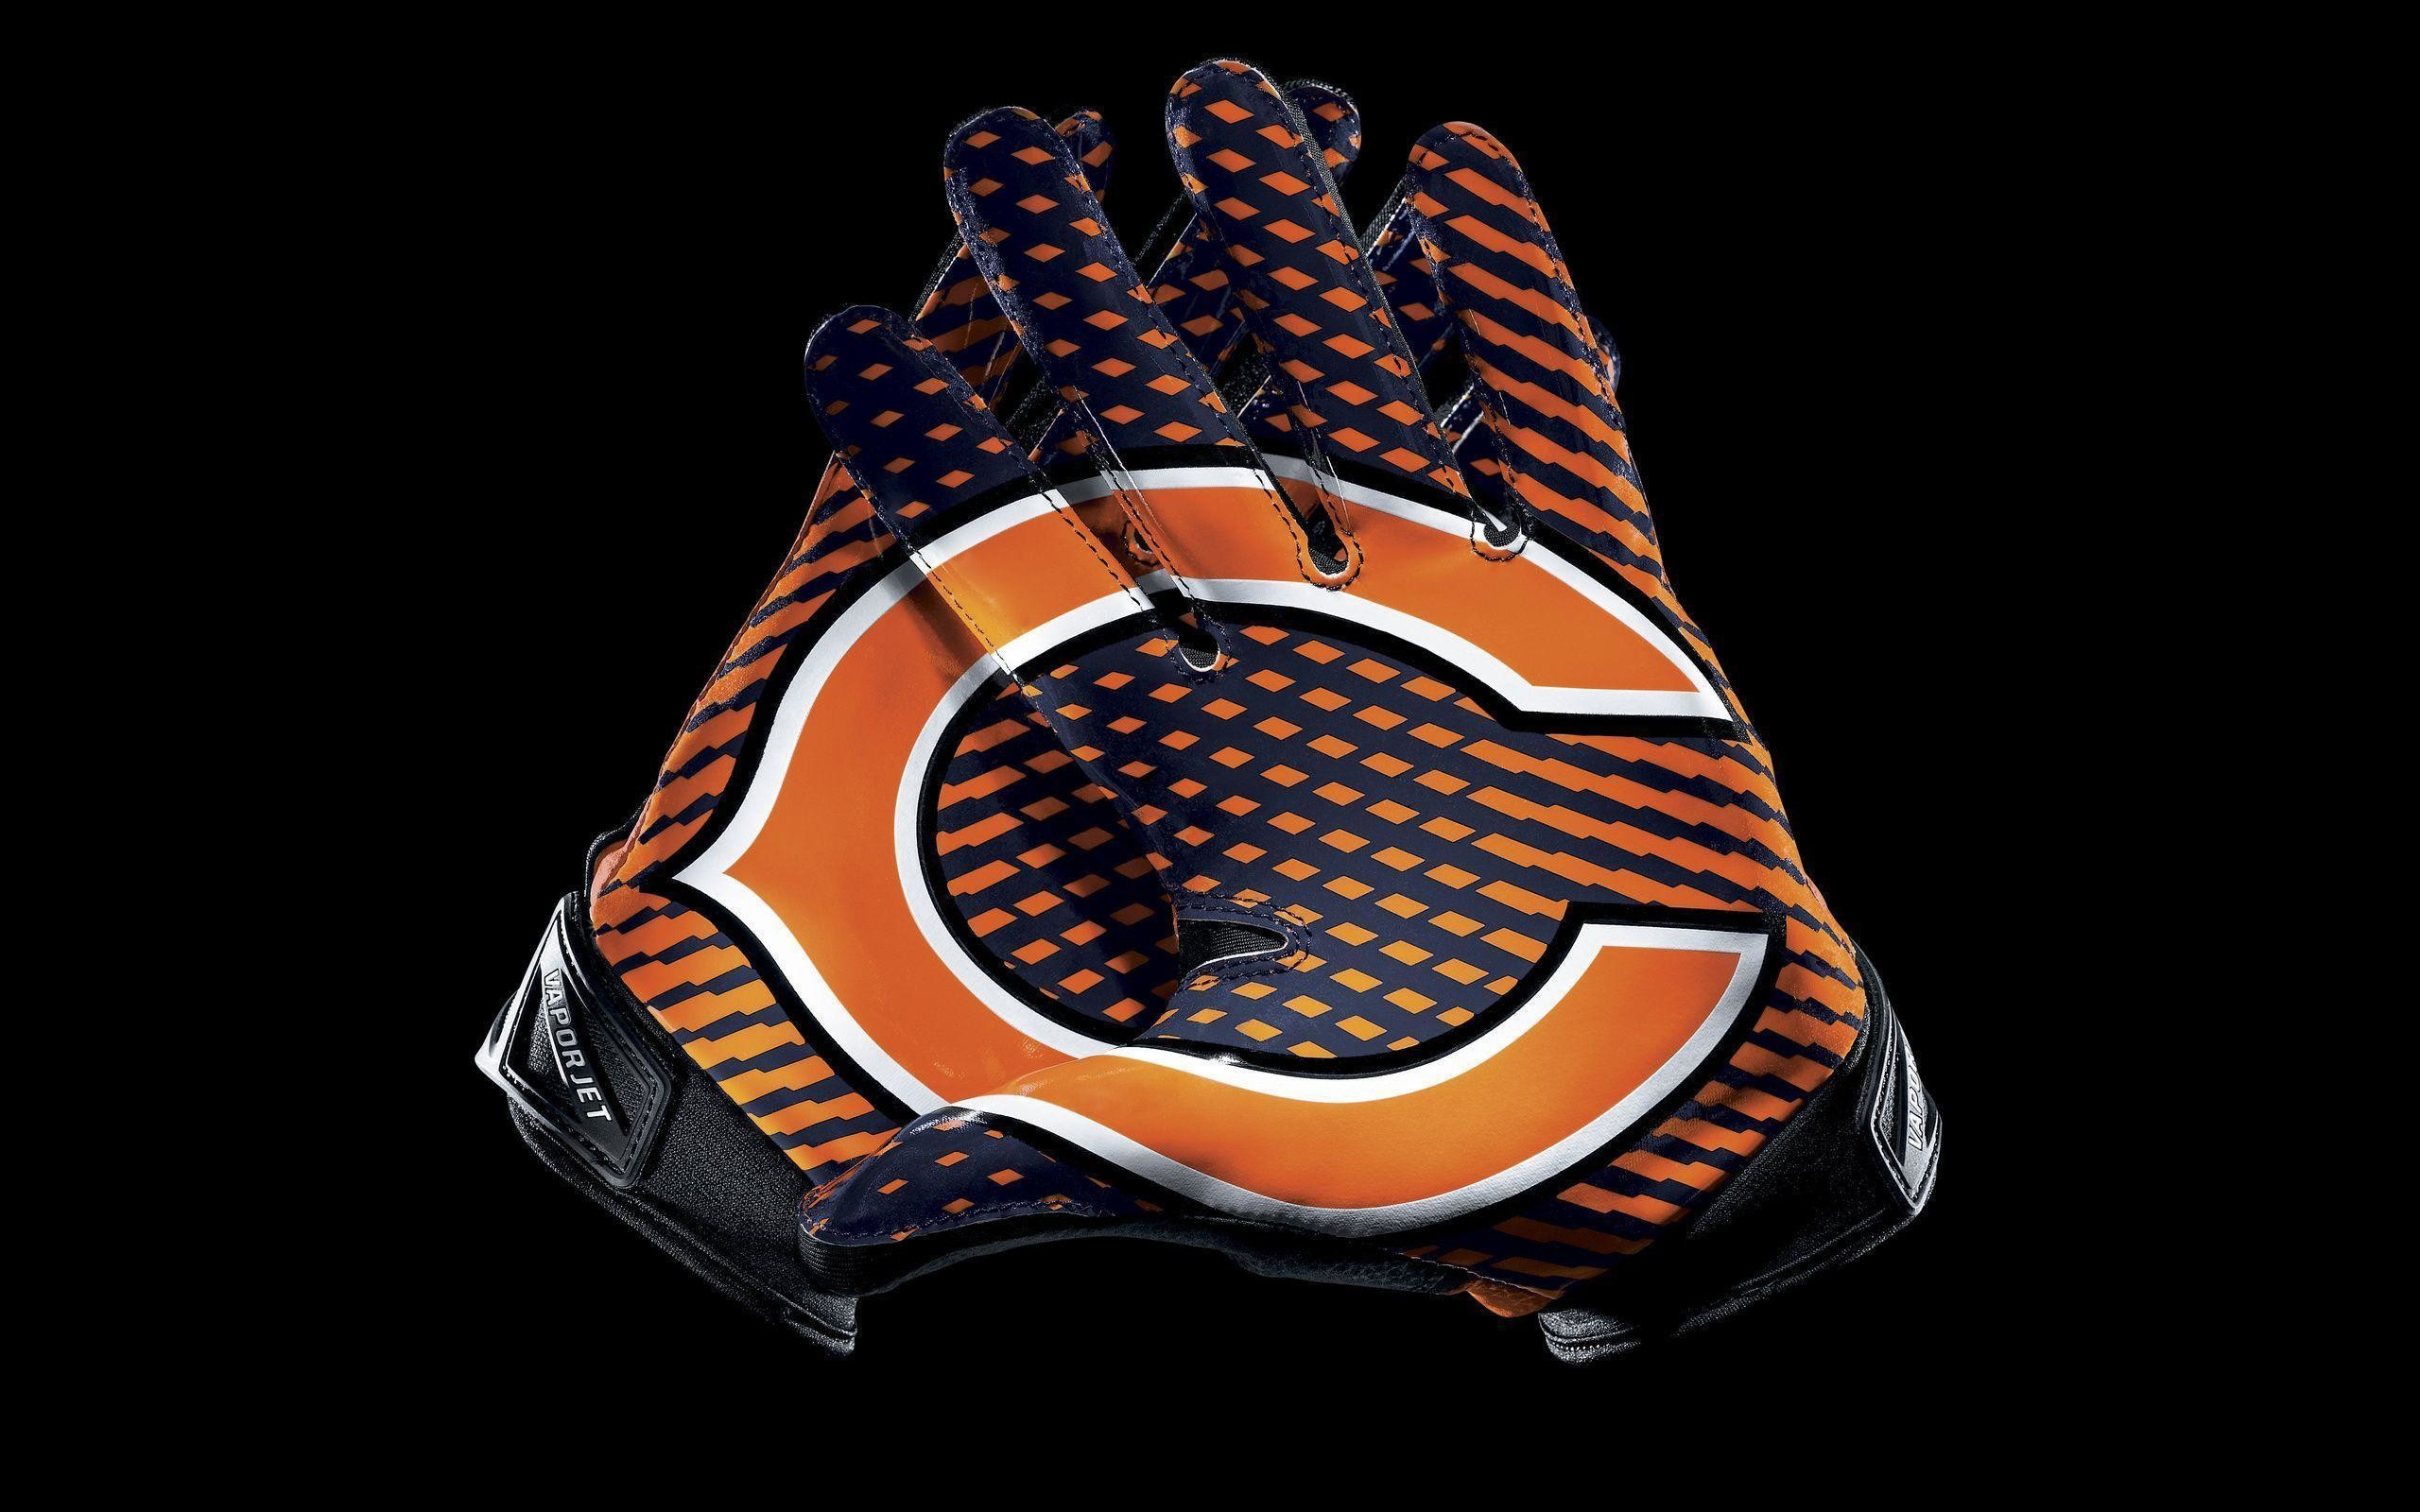 2560x1600 Chicago Bears Wallpapers 2017